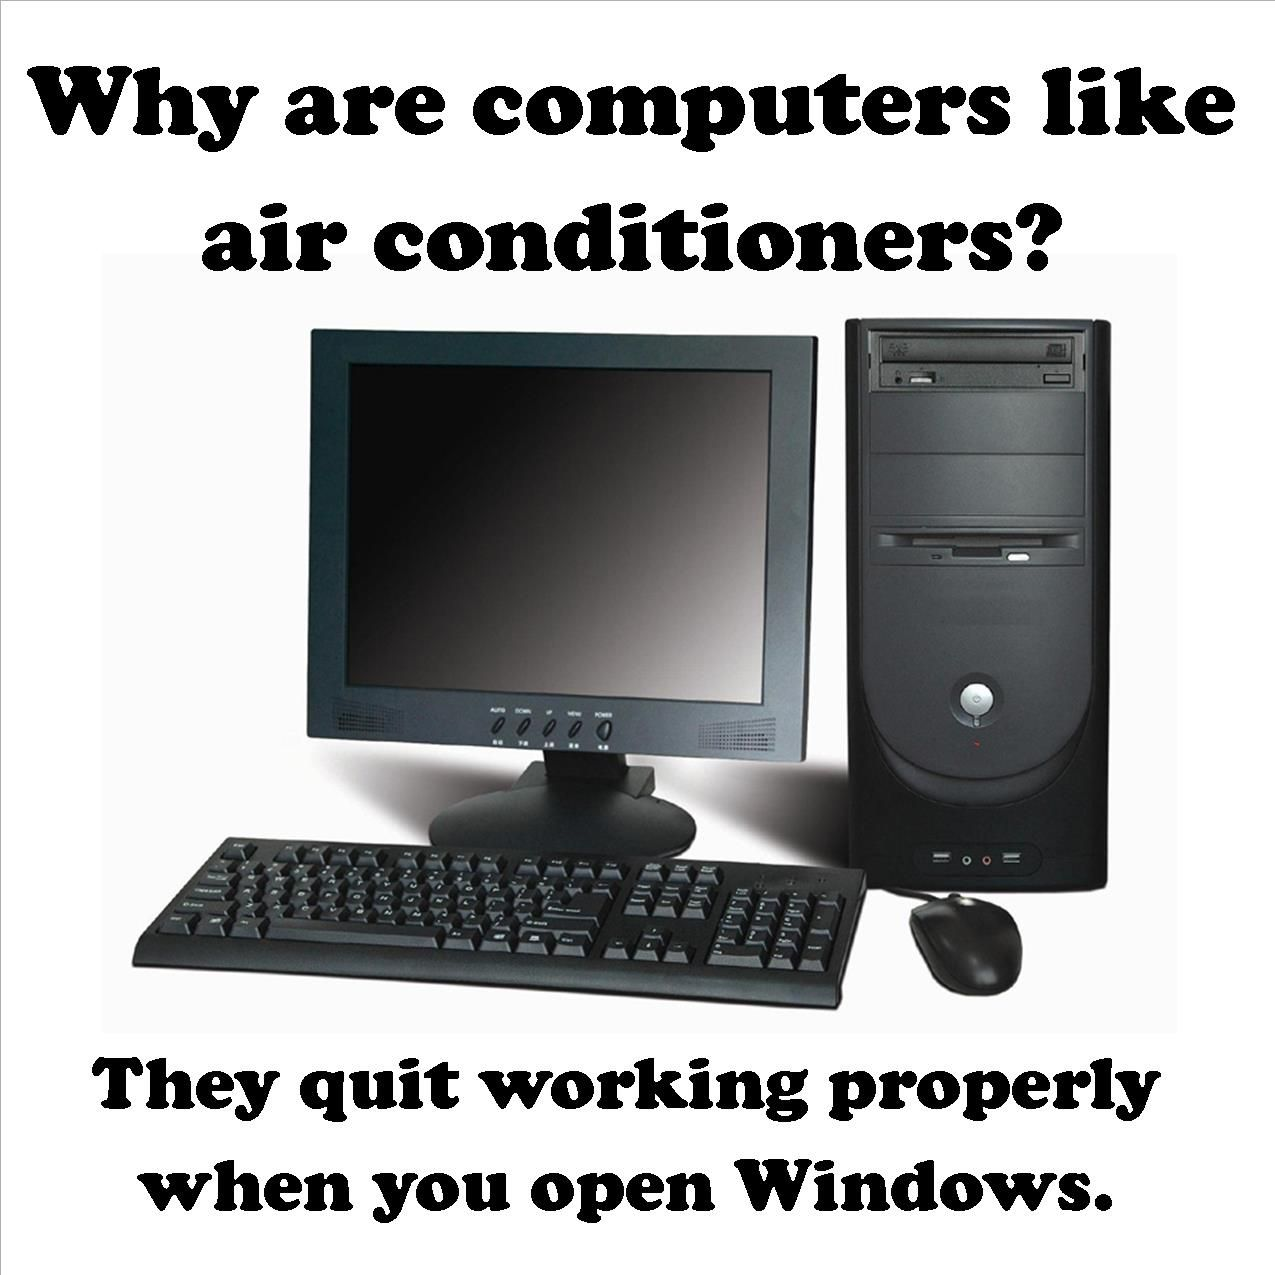 Just a little HVAC humor to start off your Monday